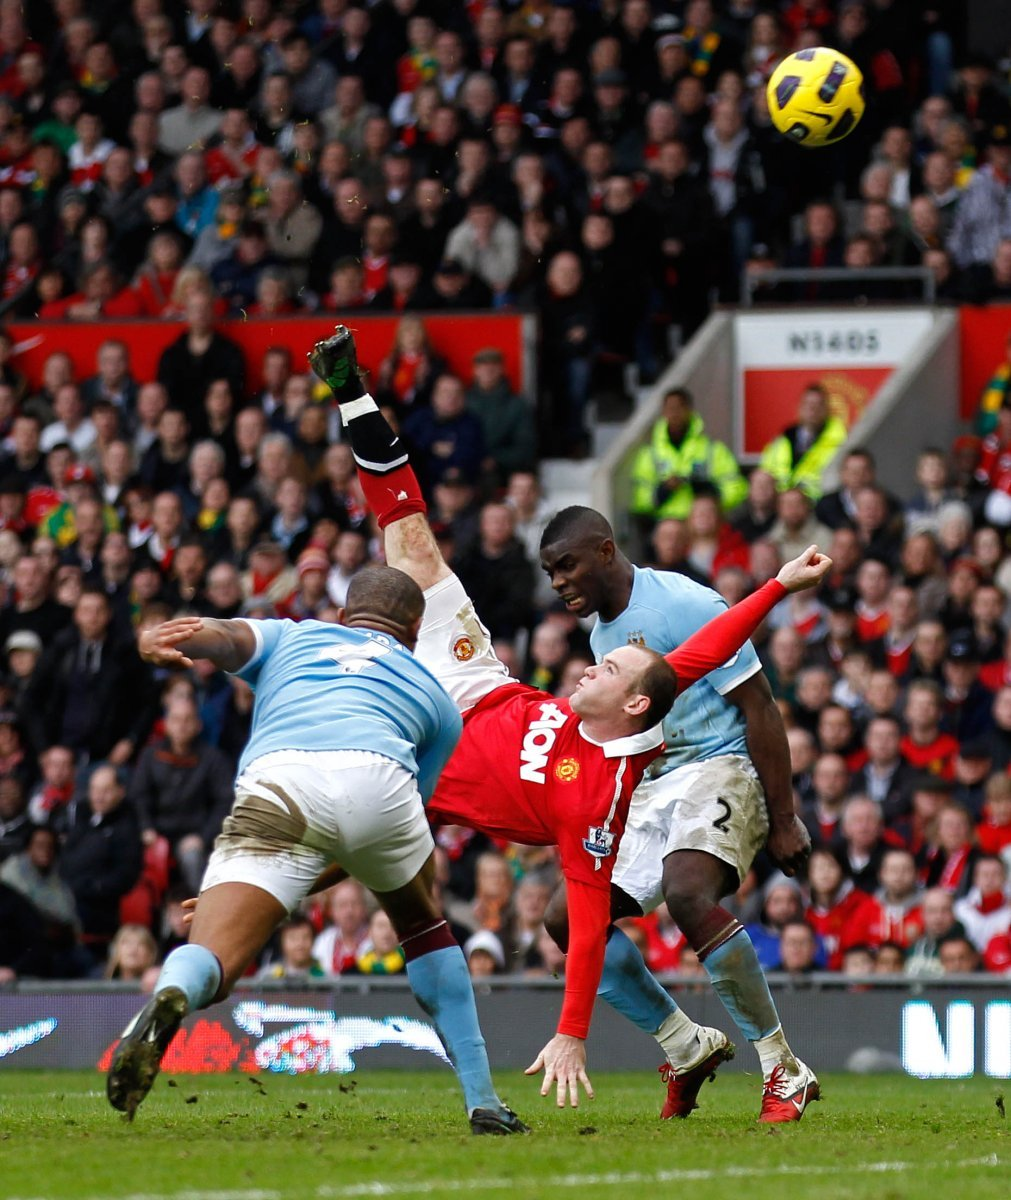 Manchester United: Fans look back at Wayne Rooney's goal against Manchester City